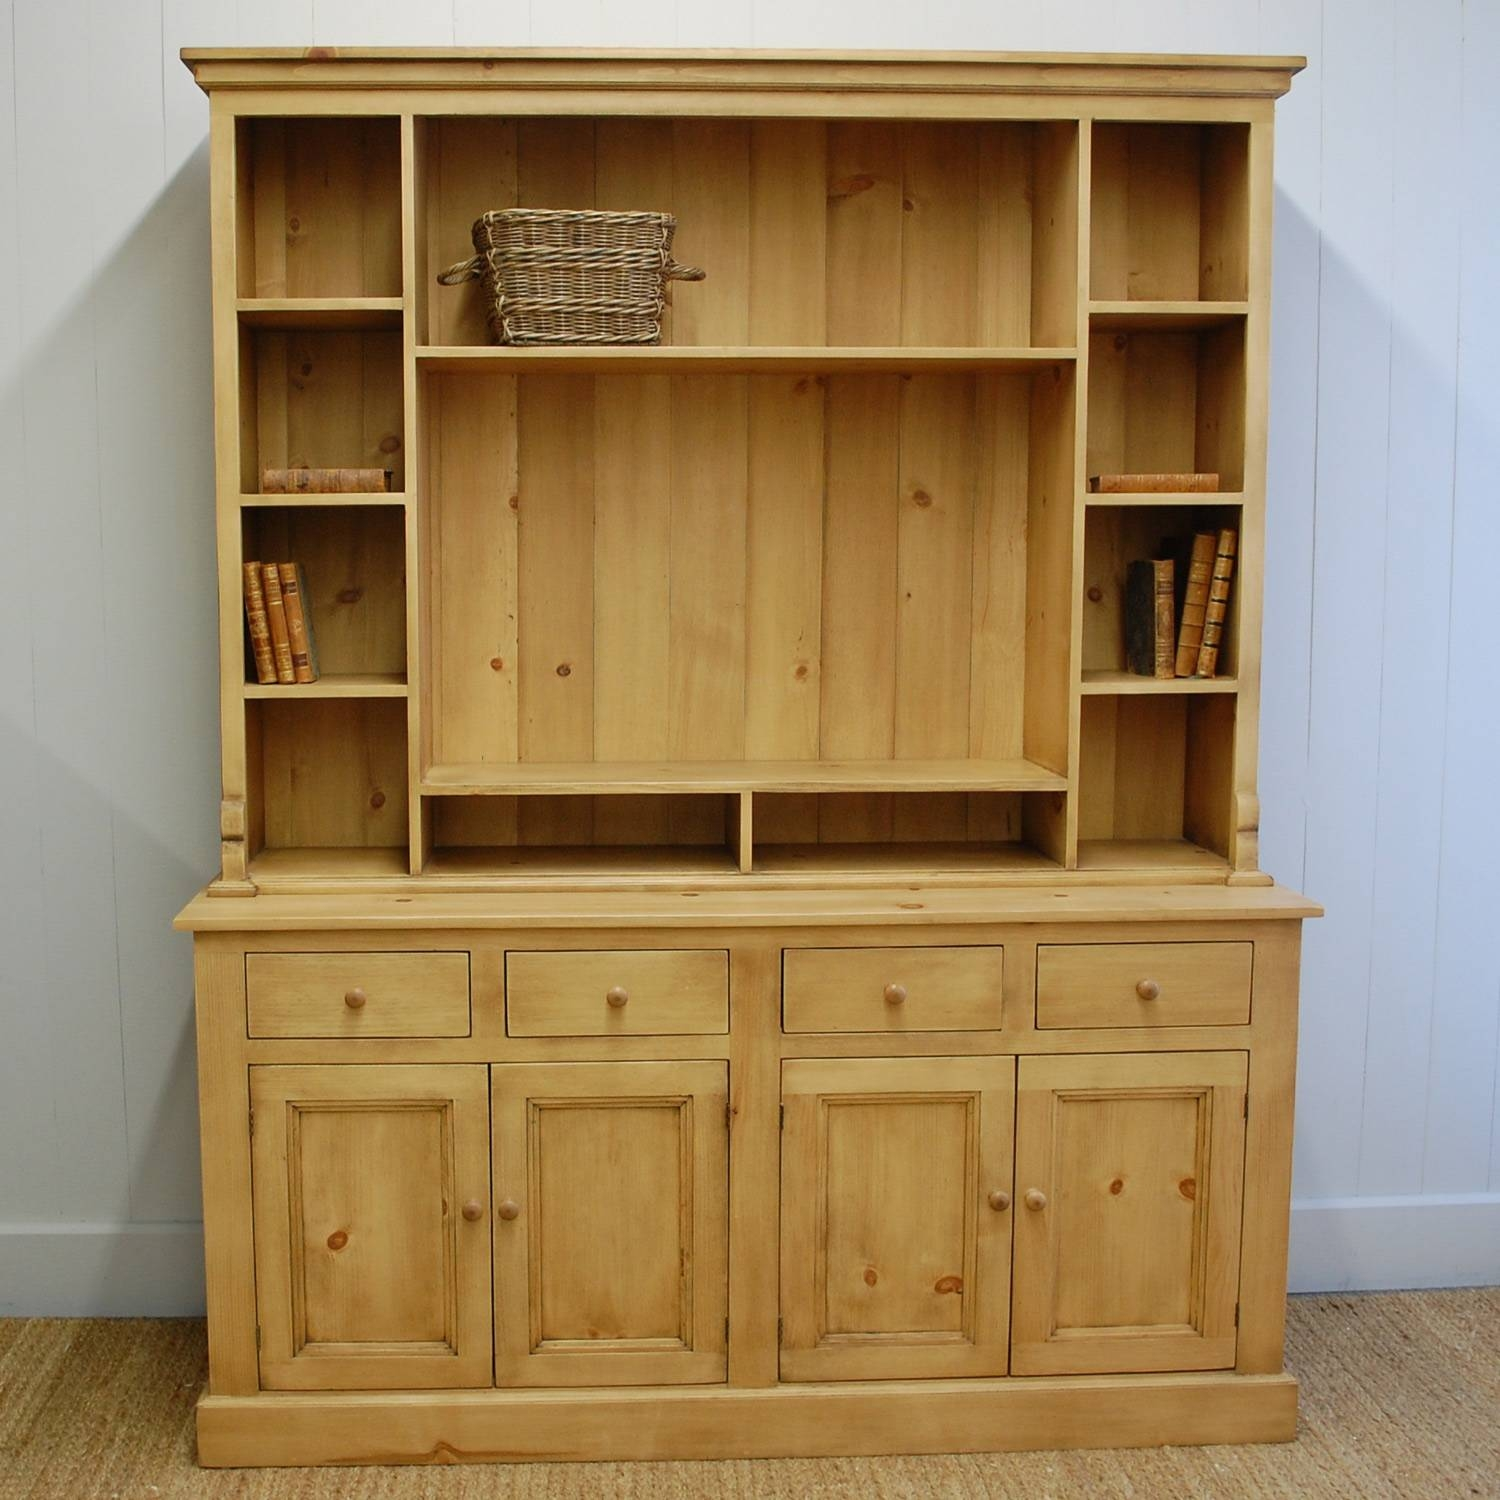 English Farmhouse Furniture Sideboards & Hutches – Layla Grayce Pertaining To Newest Sideboards And Hutches (View 5 of 15)